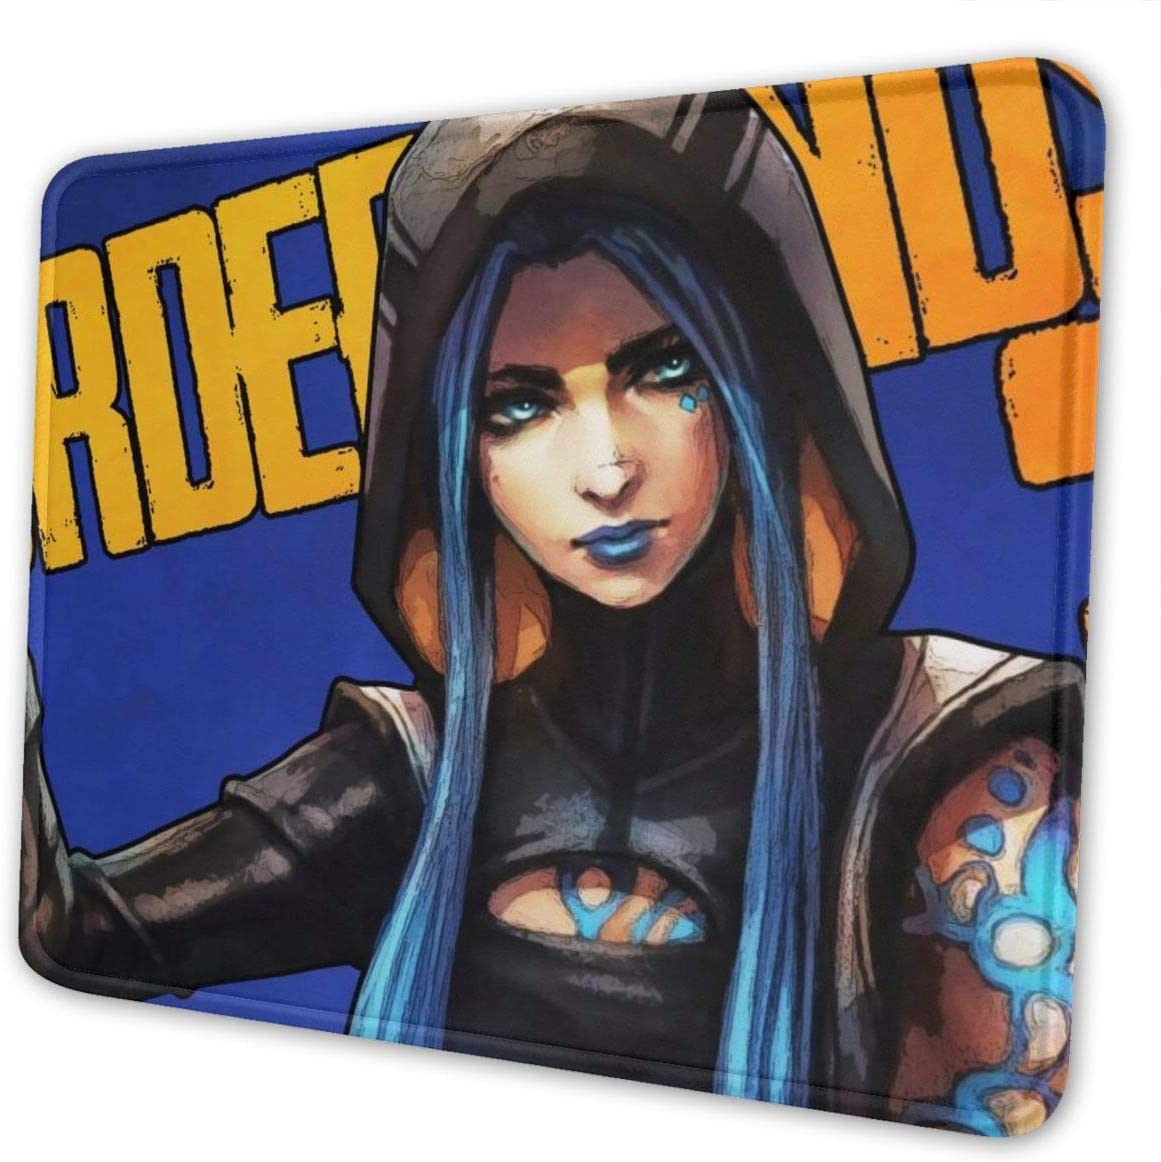 Ownspace Borderlands-3-Maya Siren Mouse Pad Graffiti Non-Slip Mouse Pad with Writh Support Acessory for Computer Laptop PC Large Keyboard Gaming Mouse Pad 7 X 8.6 in Novelty Gift